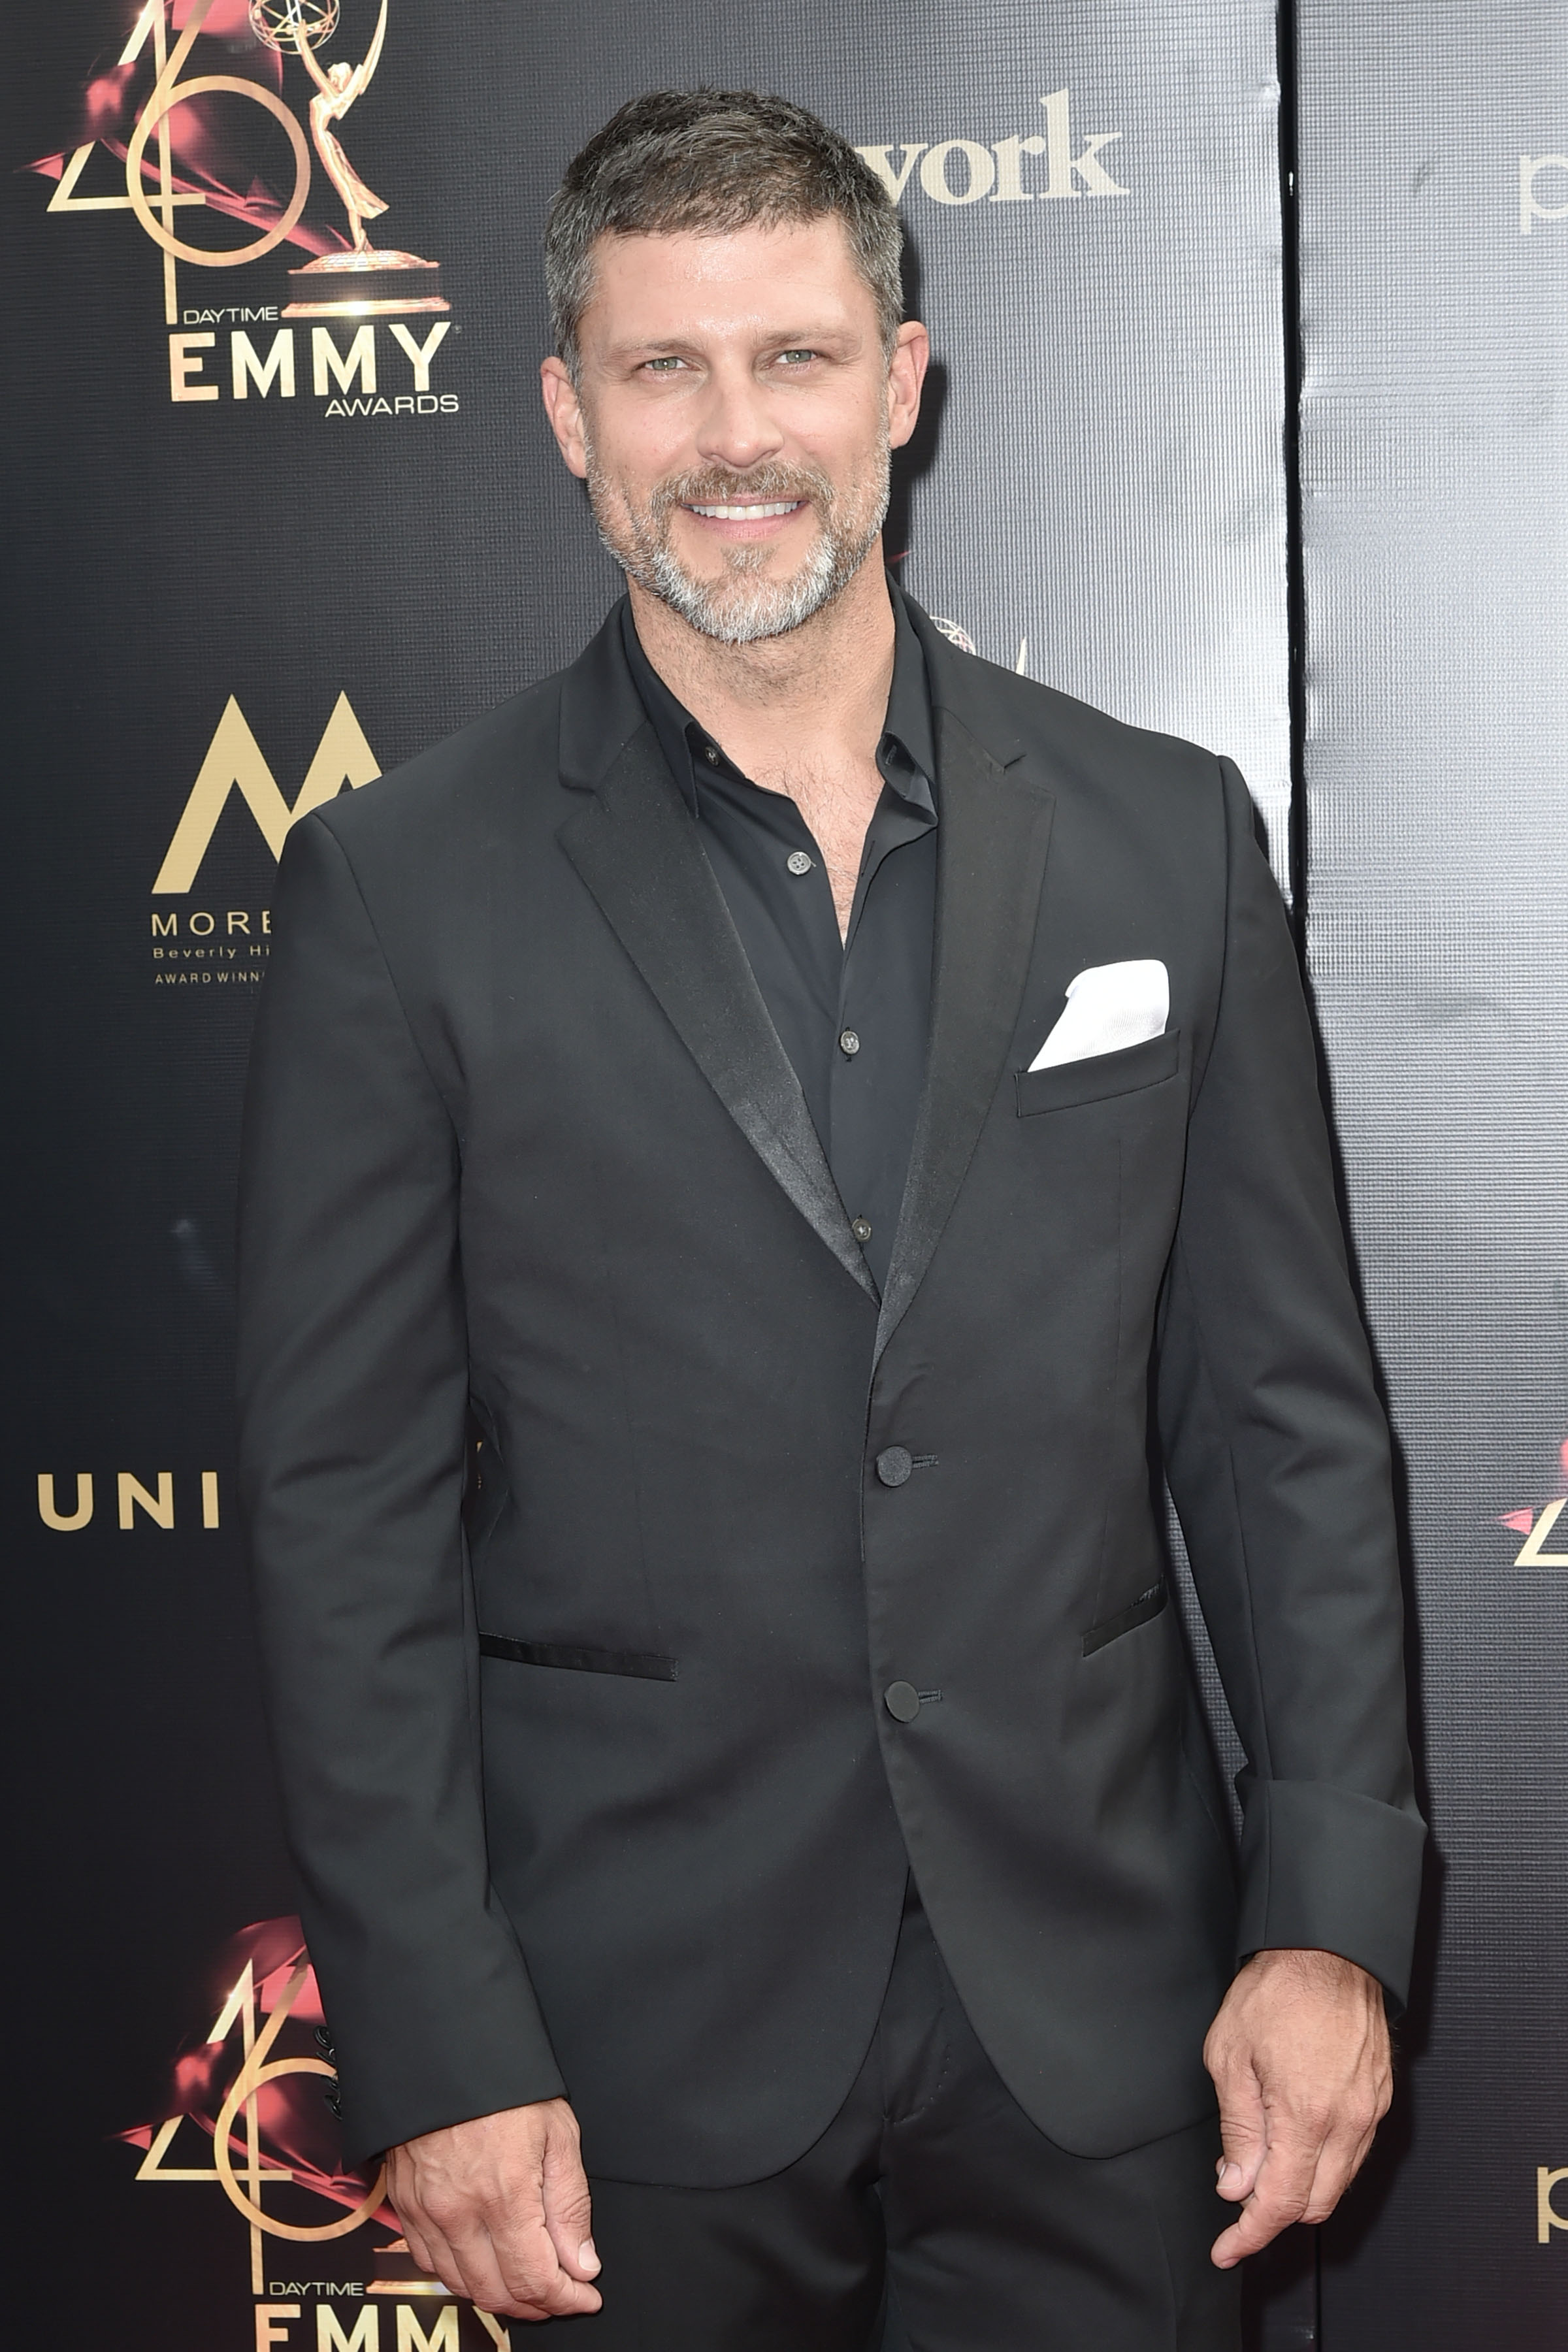 Greg Vaughan attends the 46th annual Daytime Emmy Awards on May 05, 2019, in Pasadena, California. | Source: Getty Images.